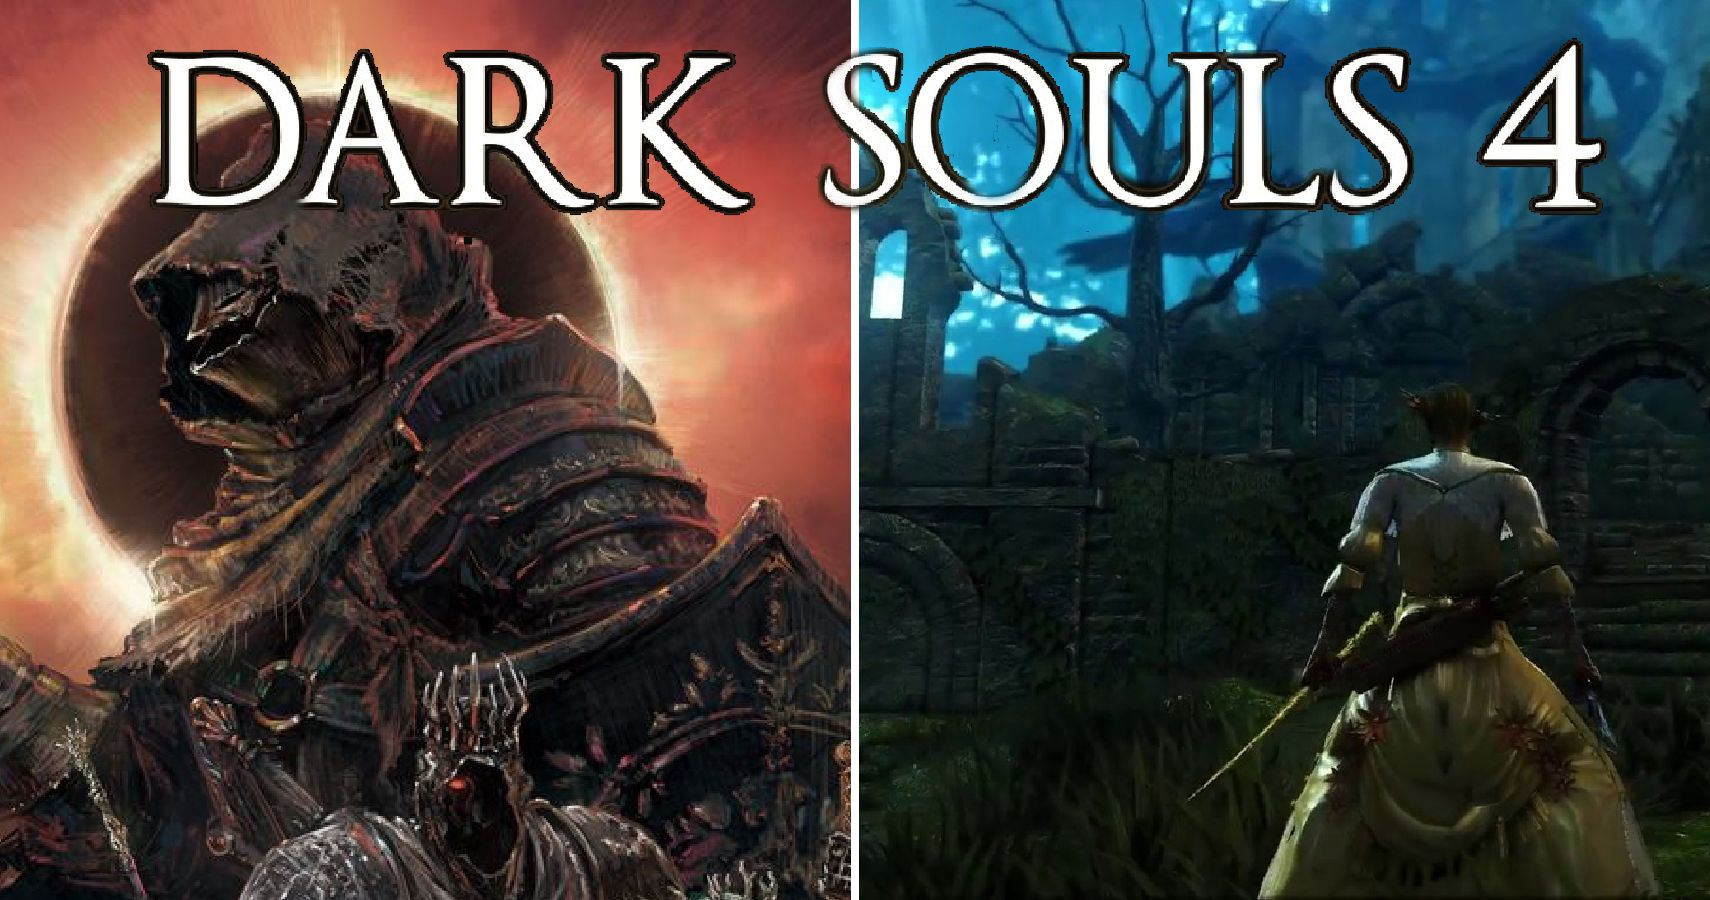 Get hyped dark souls rumors that will blow you away